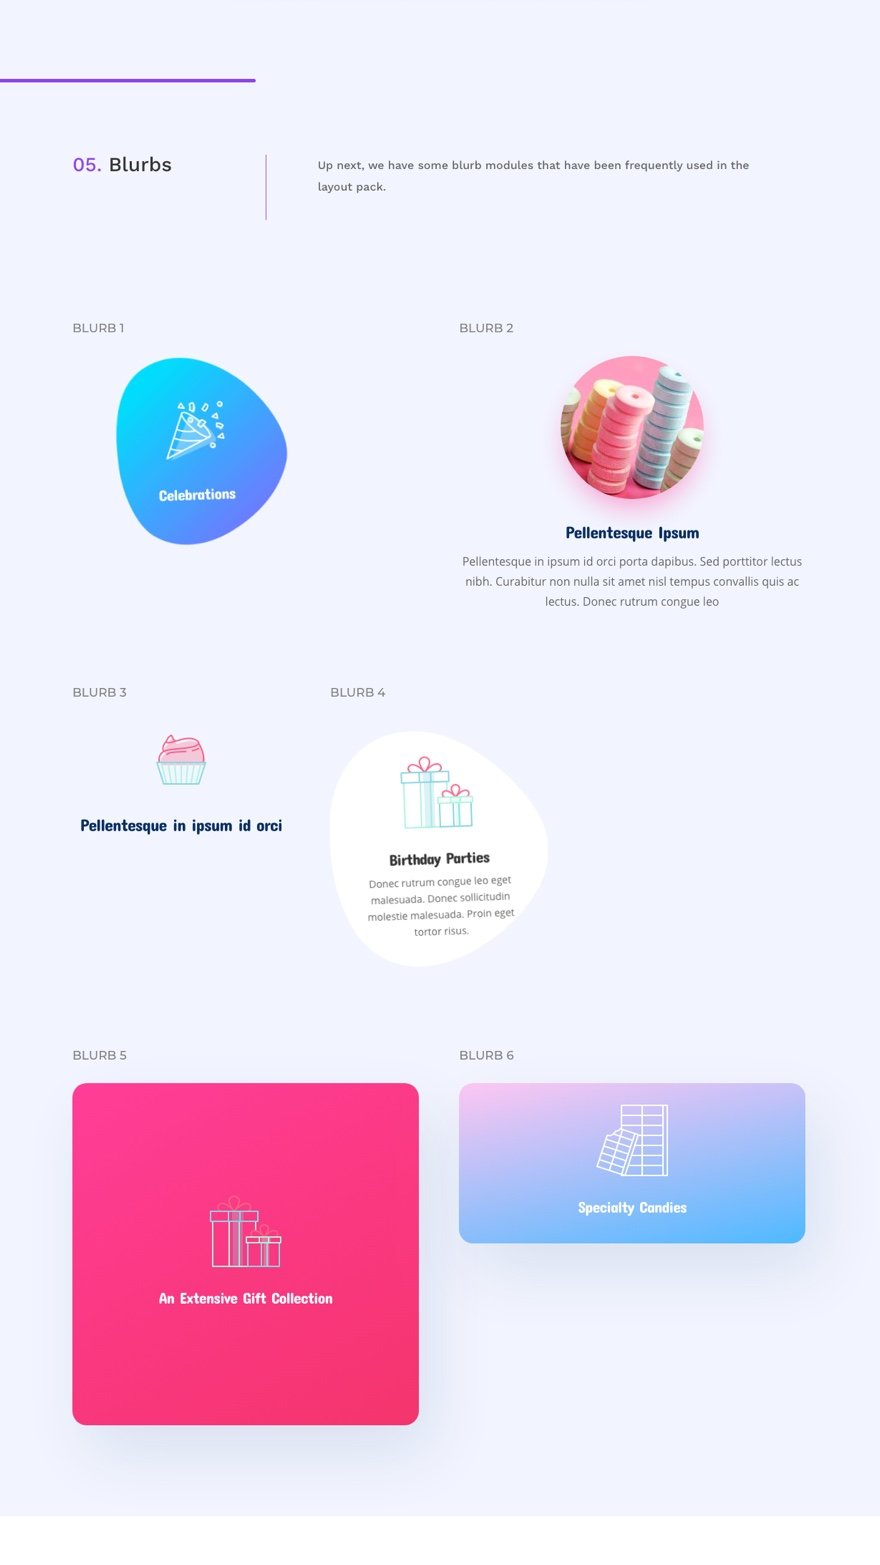 download-a-free-global-presets-style-guide-for-divis-candy-shop-layout-pack-6 Download a FREE Global Presets Style Guide for Divi's Candy Shop Layout Pack